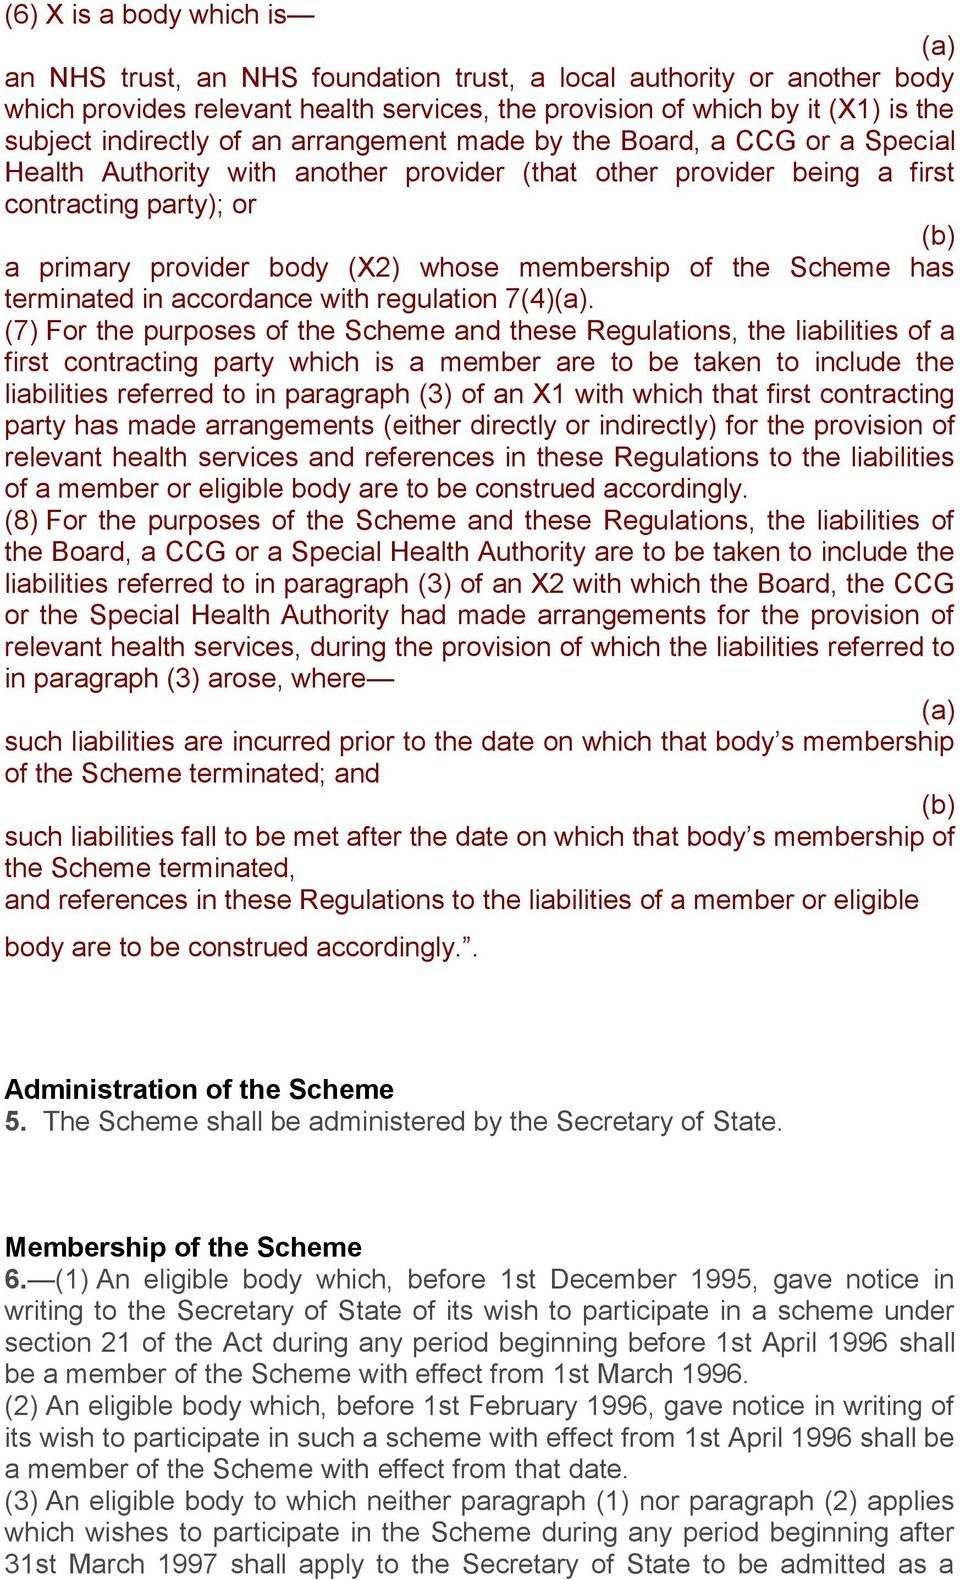 of the Scheme has terminated in accordance with regulation 7(4).